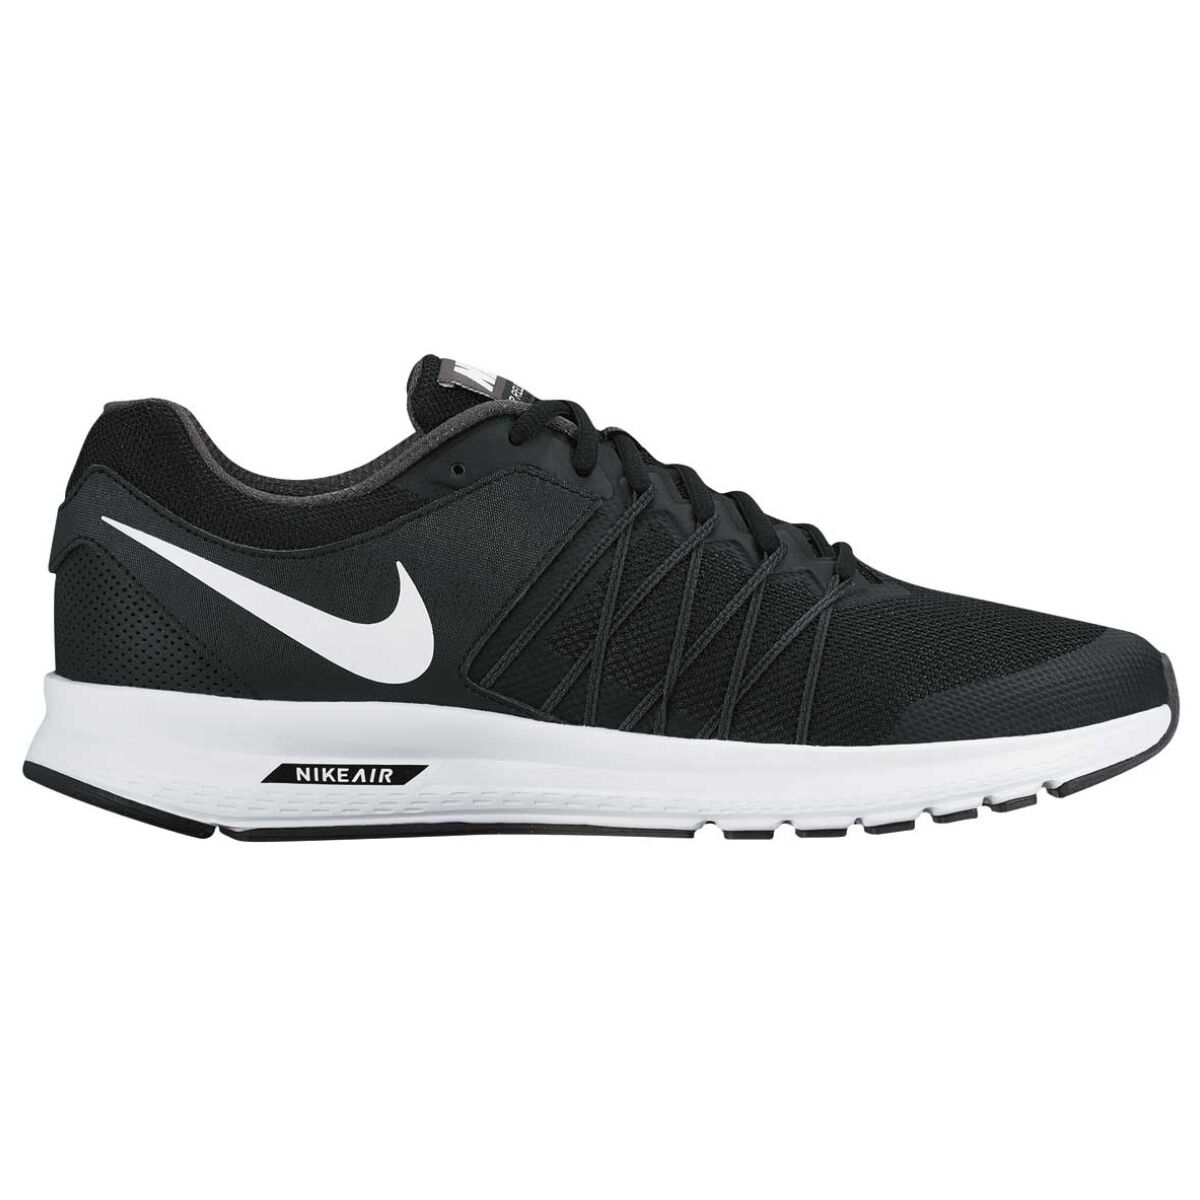 Nike Air Relentless 6 Mens Running Shoes